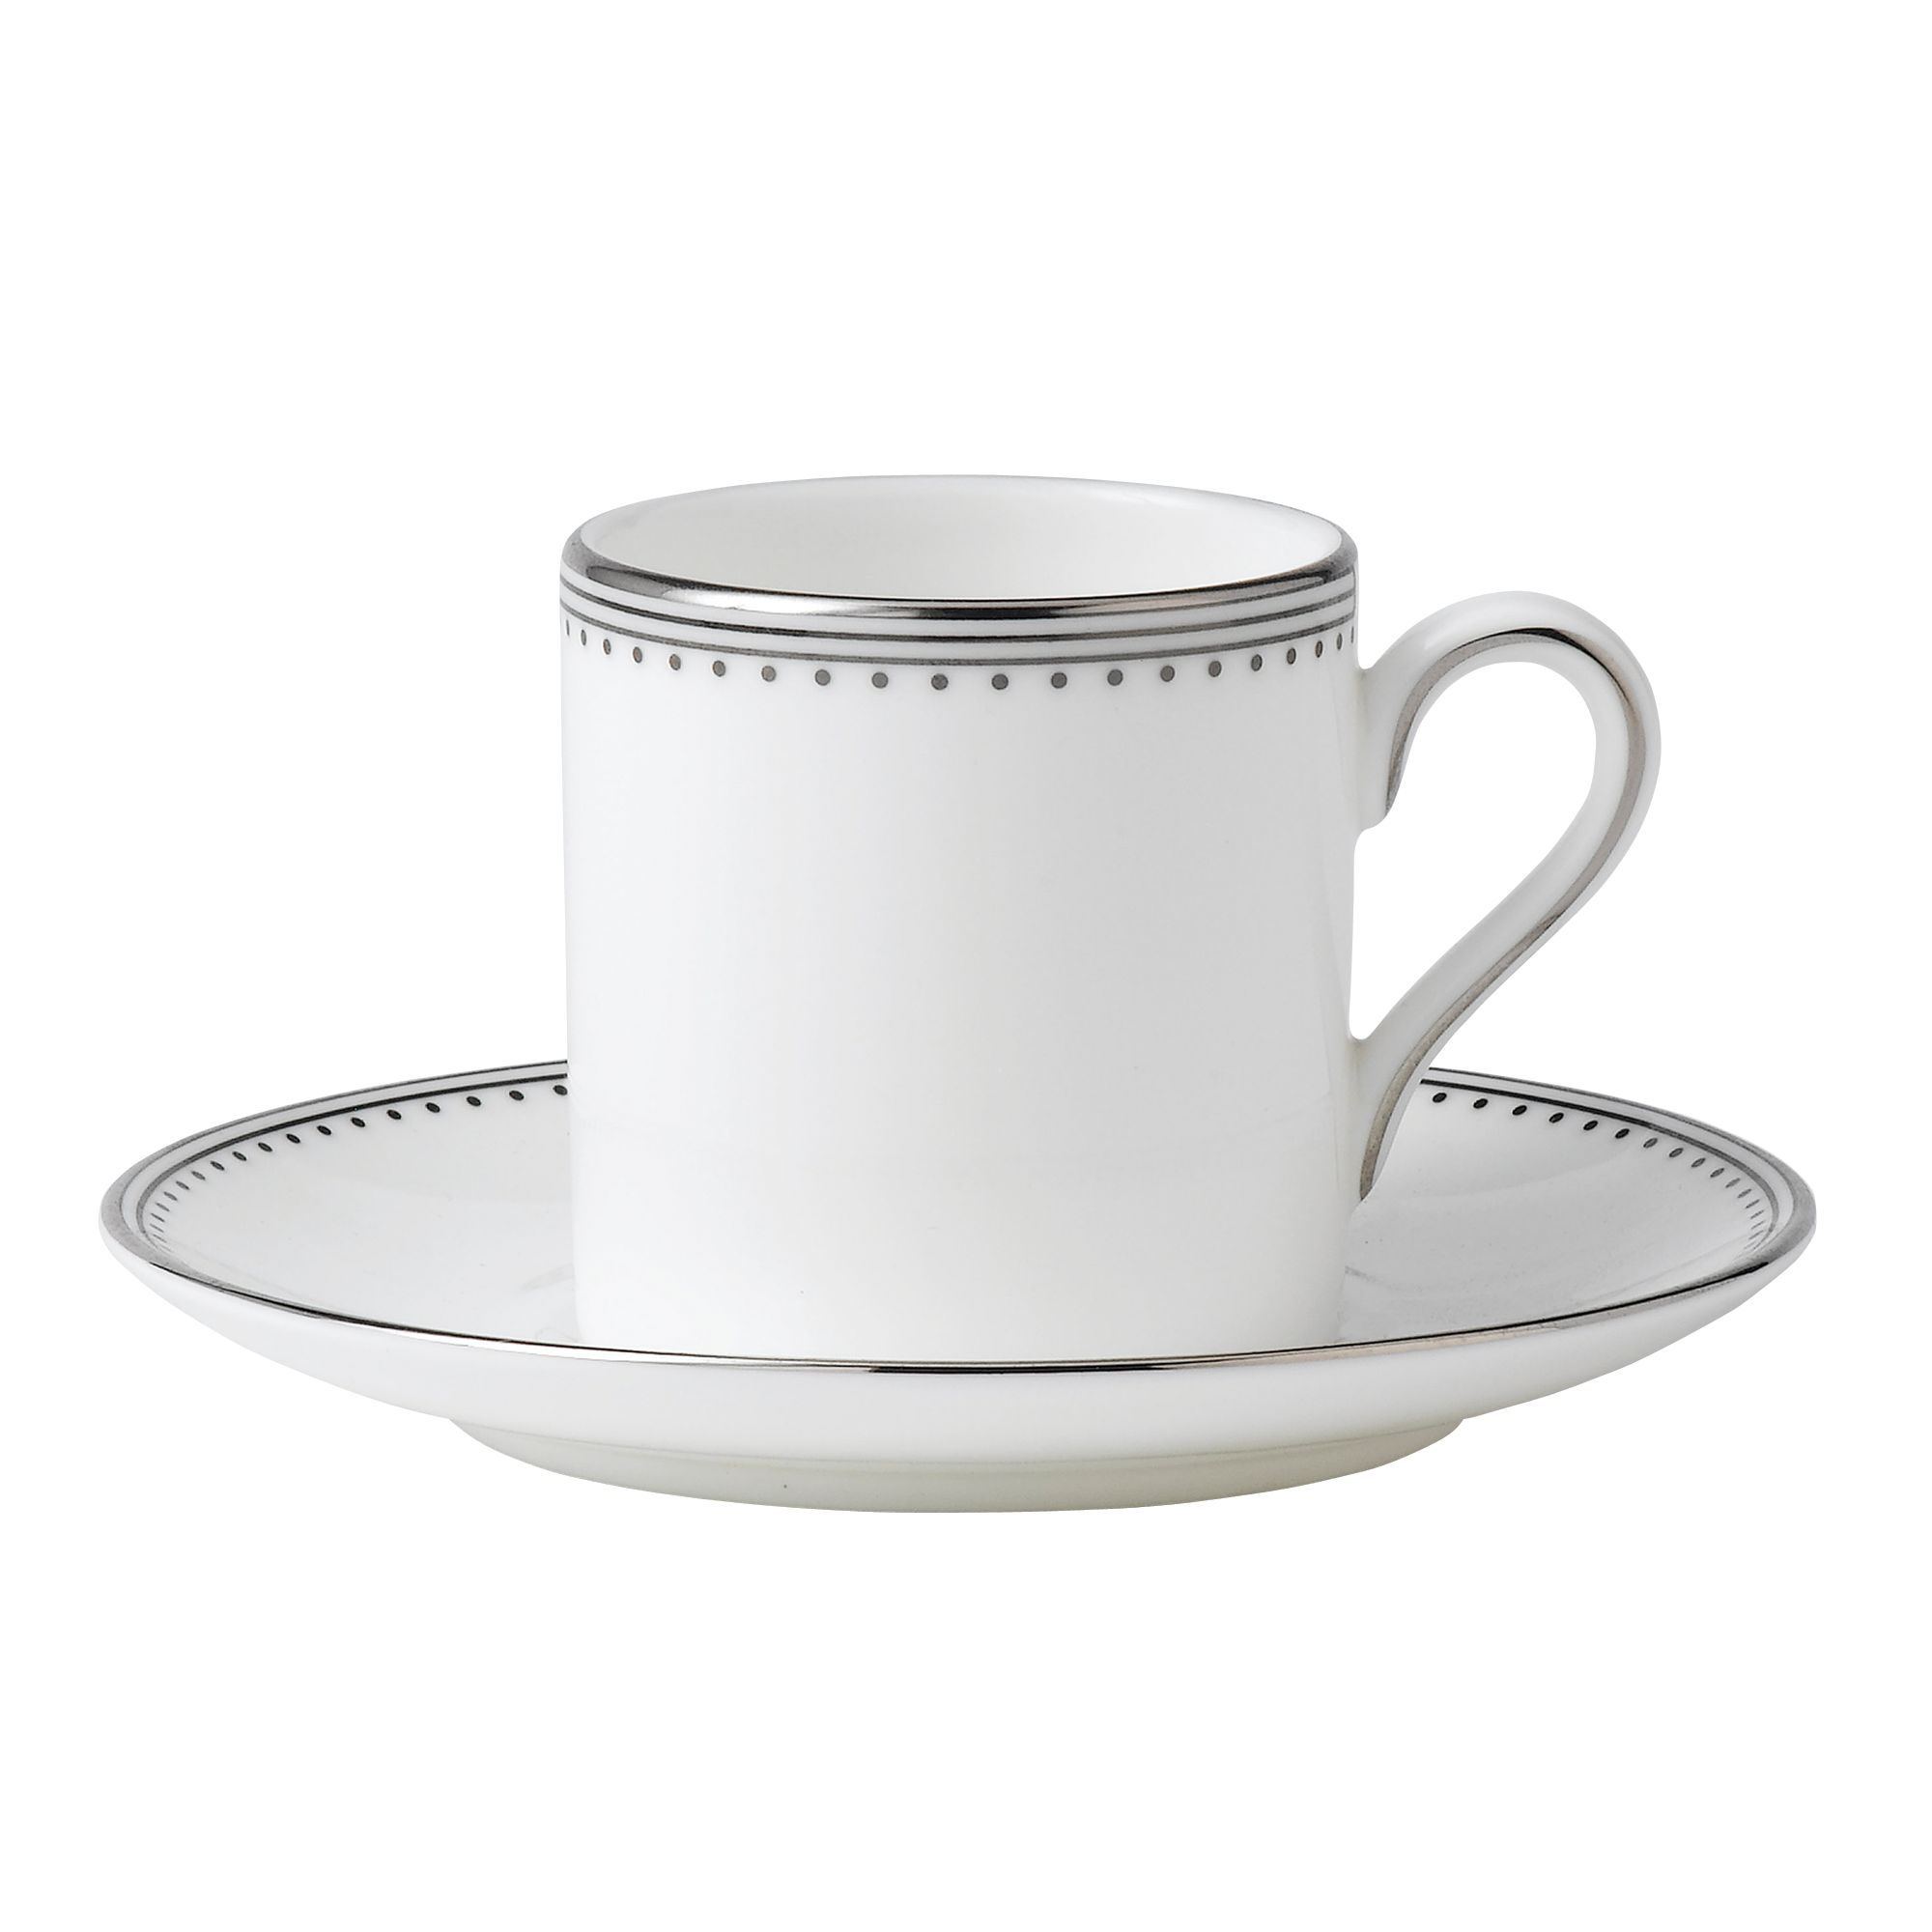 Grosgrain Bond Coffee Saucer